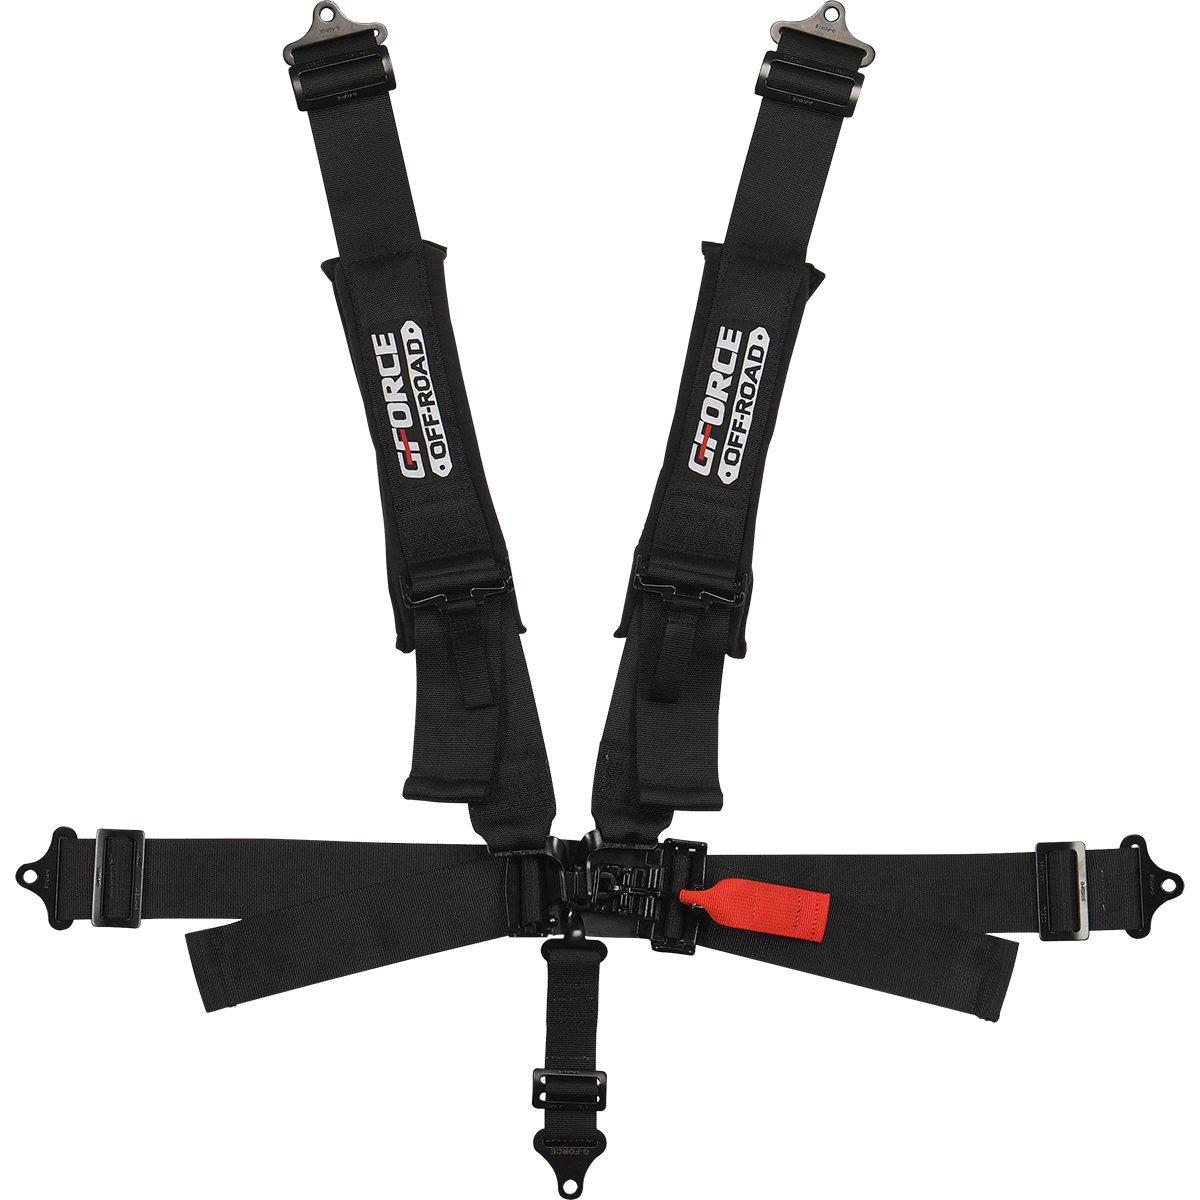 UTV SFI 5PT PD-LAP IND-SHLD L&L BLACK [RACING APPROVED]-Harness-G-Force-Black Market UTV